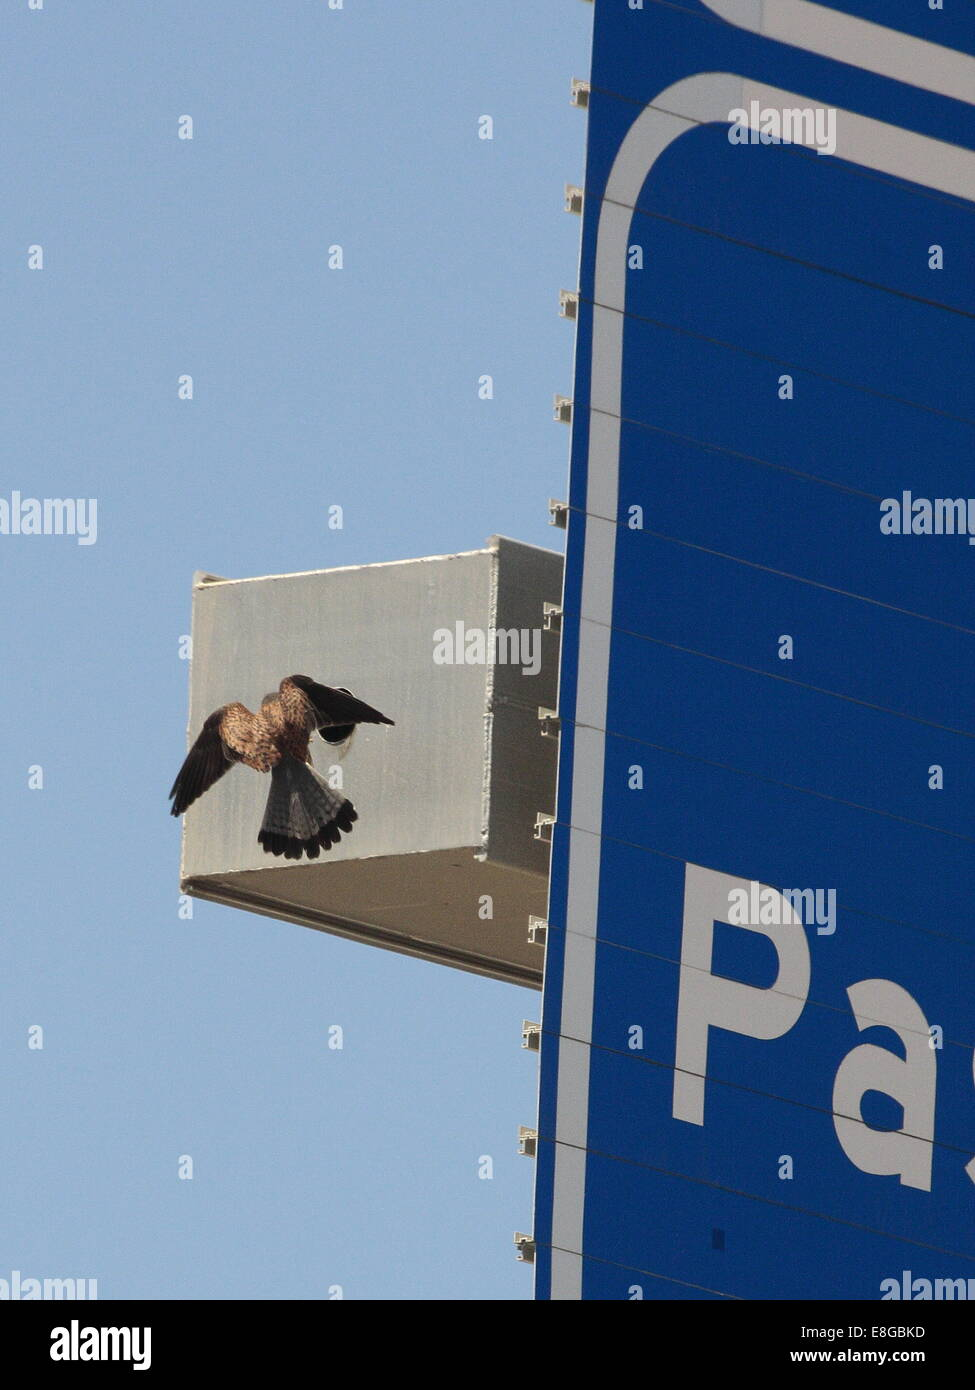 A common Kestrel entering its nest, formed in the gantry of an overhead motorway sign. - Stock Image